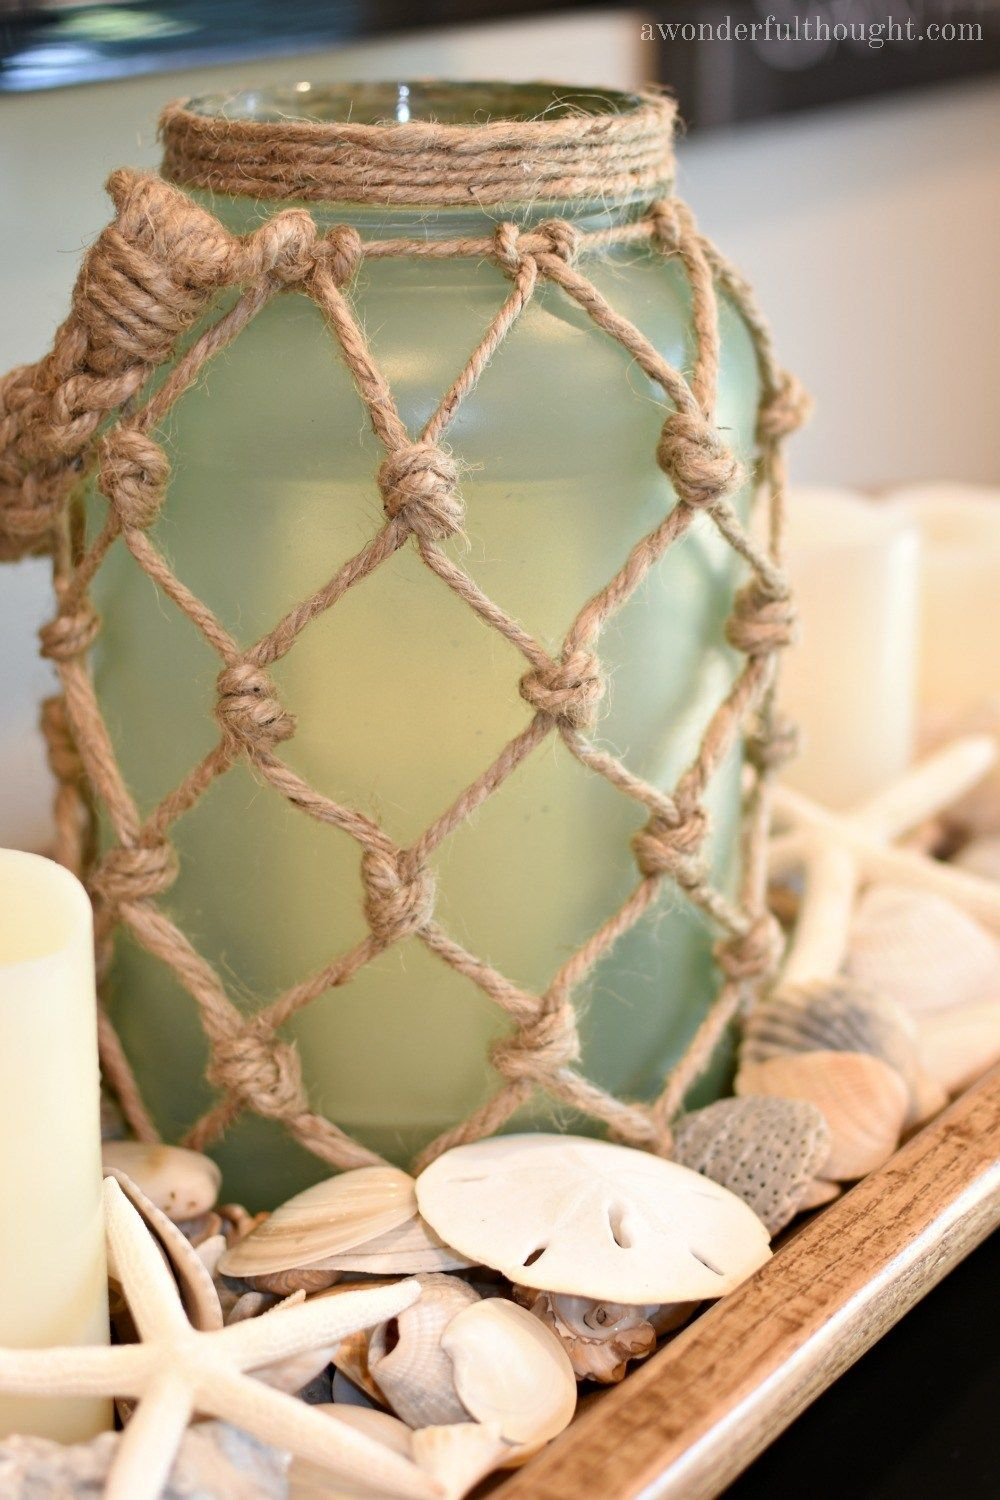 DIY Sea Glass Rope Lantern - A Wonderful Thought